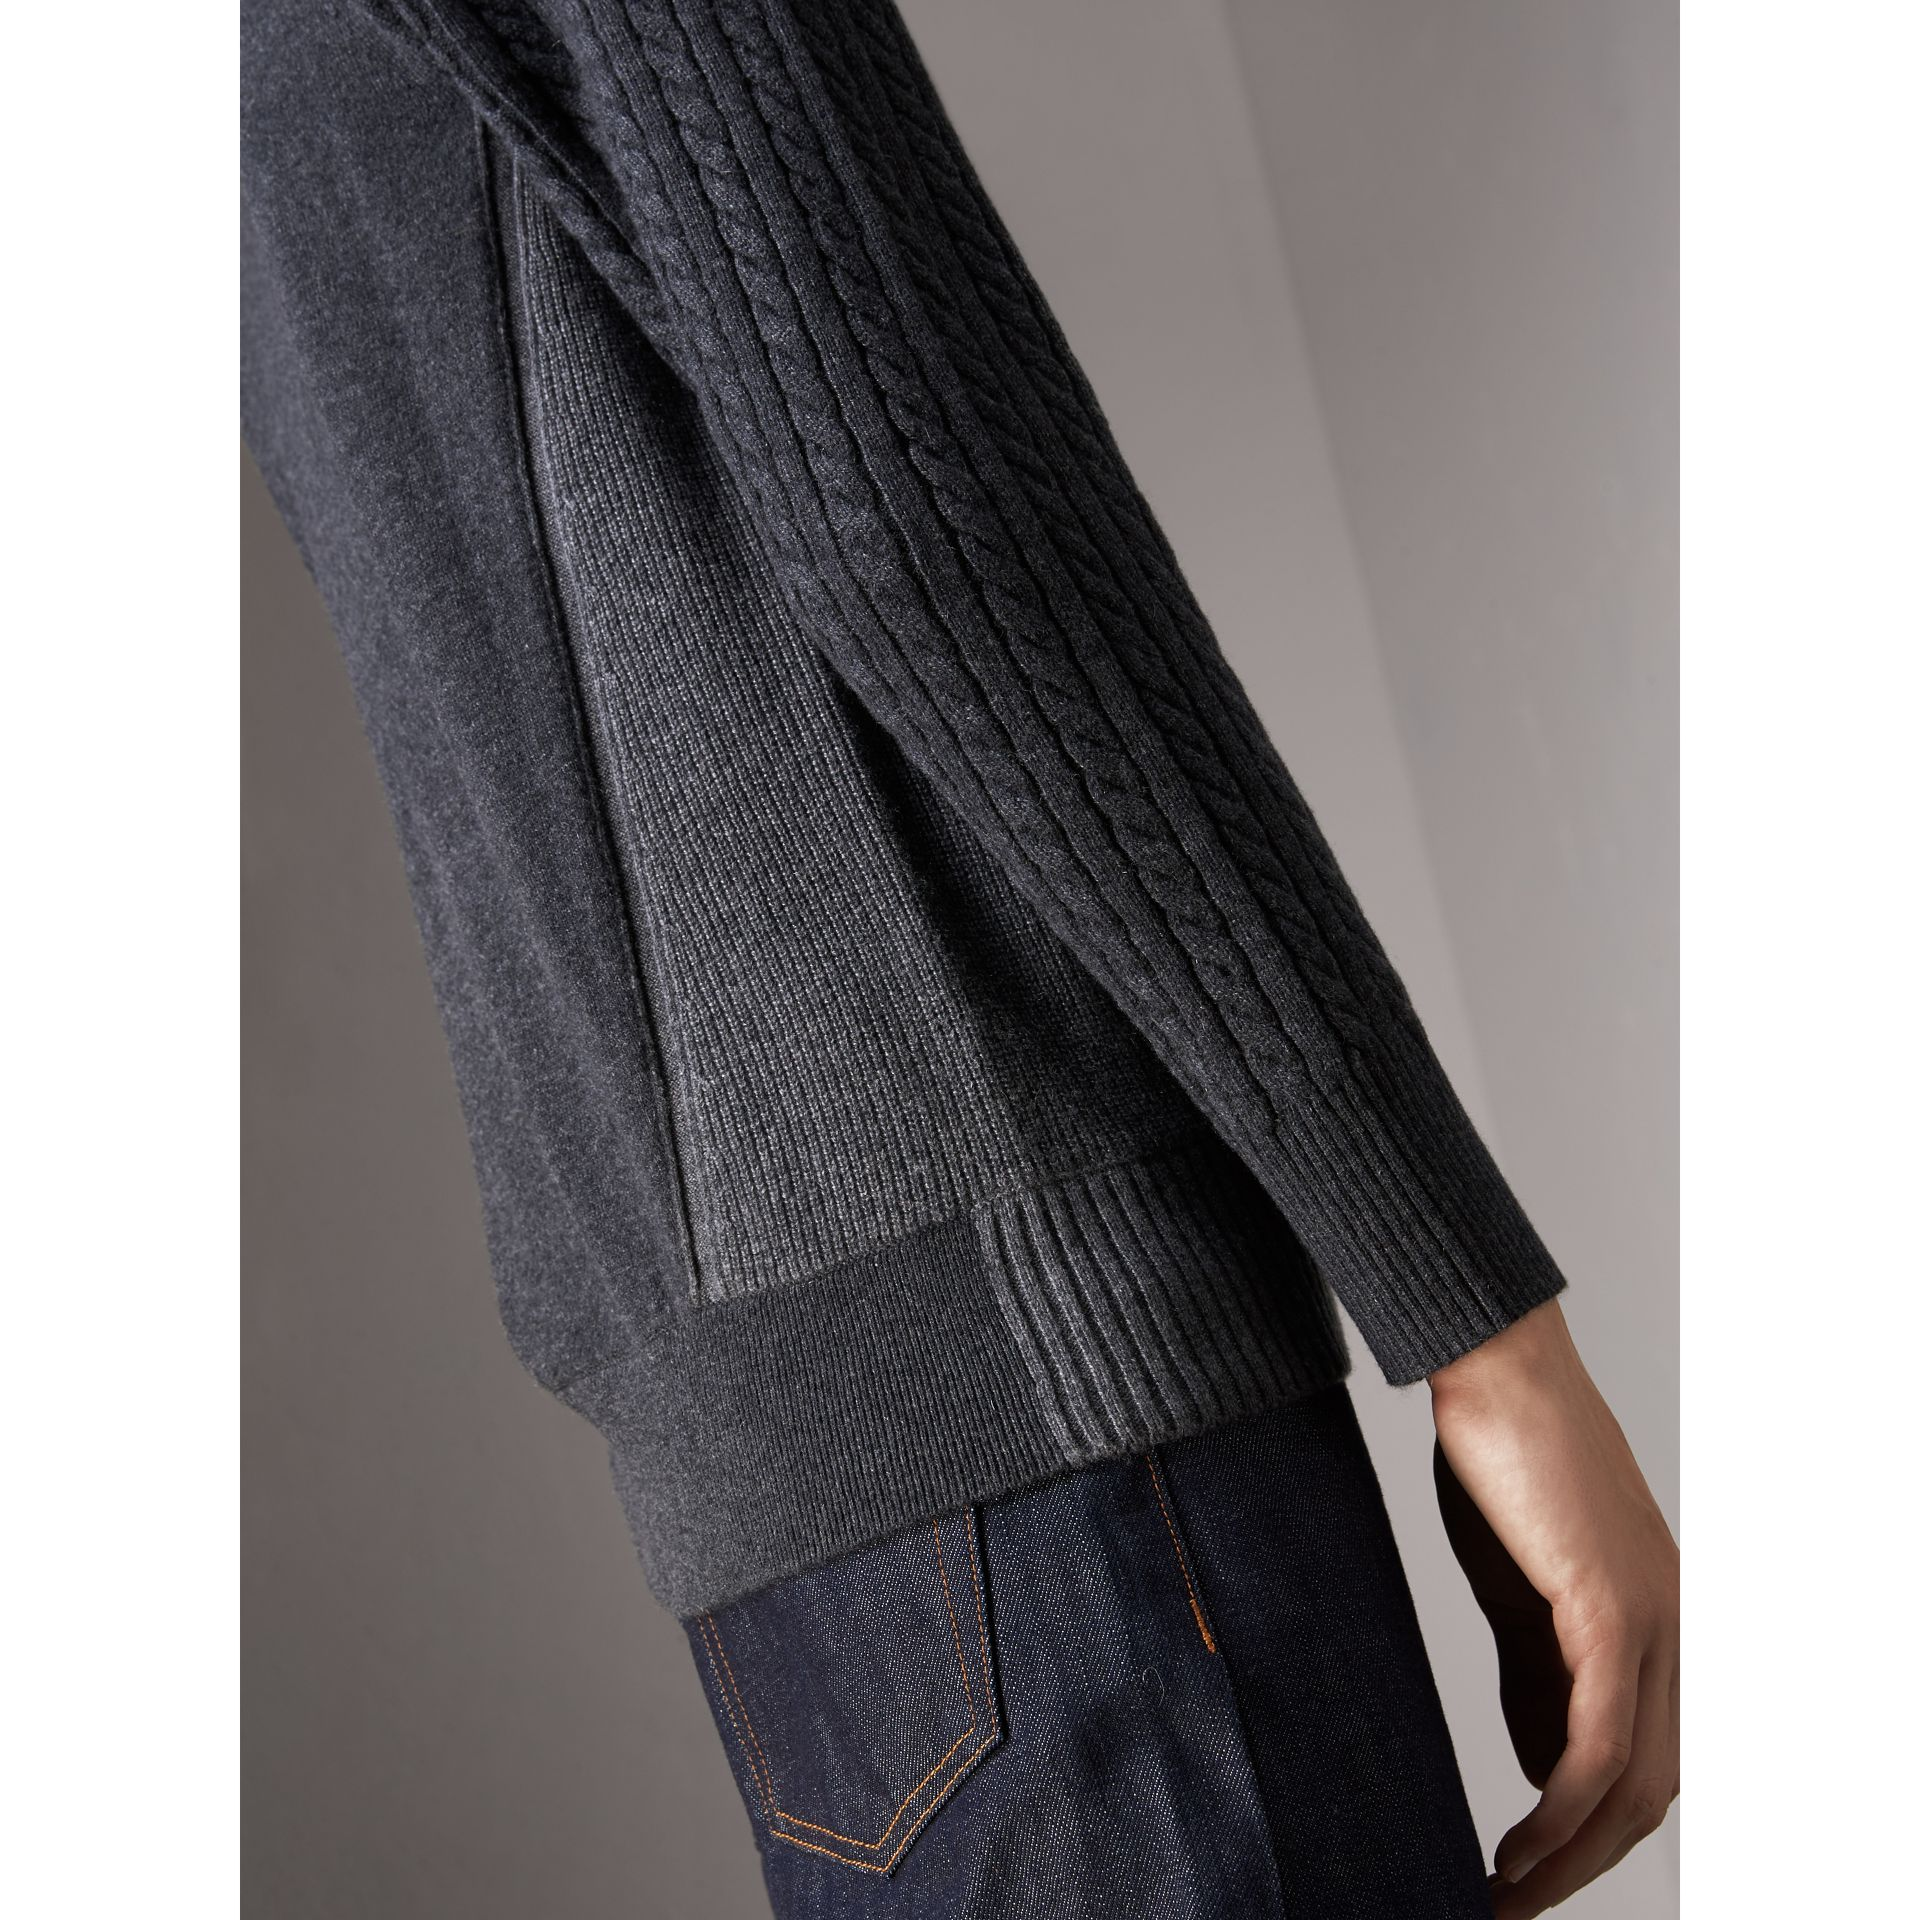 Two-tone Cable Knit Cashmere Sweater in Charcoal - Men | Burberry - gallery image 2